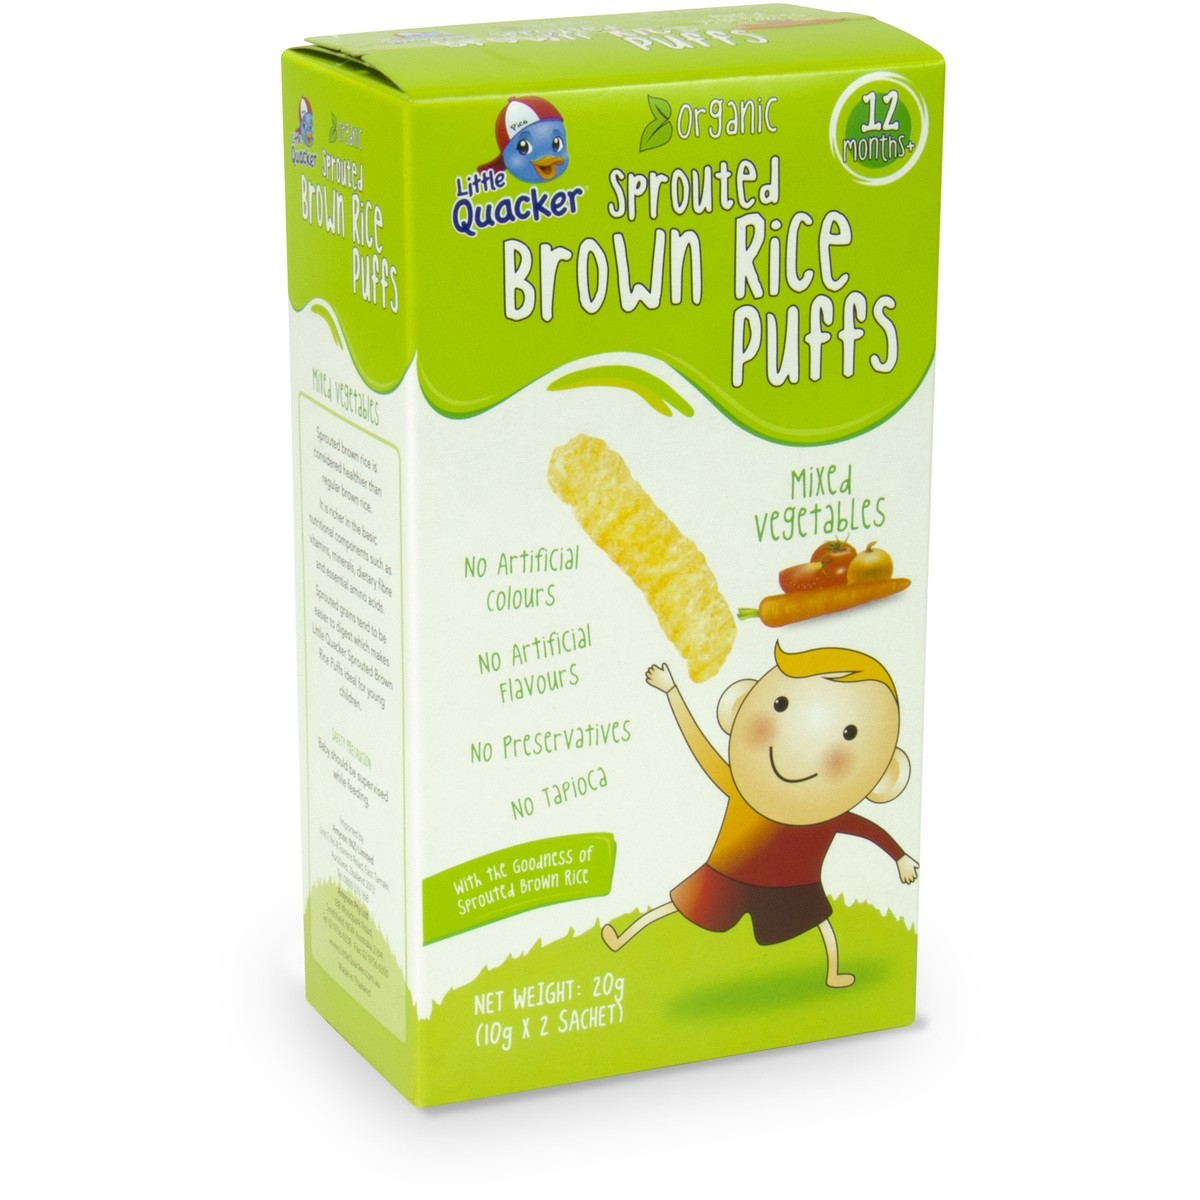 Little Quacker: Sprouted Brown Rice Puffs - Mixed Vegetables (20g) image